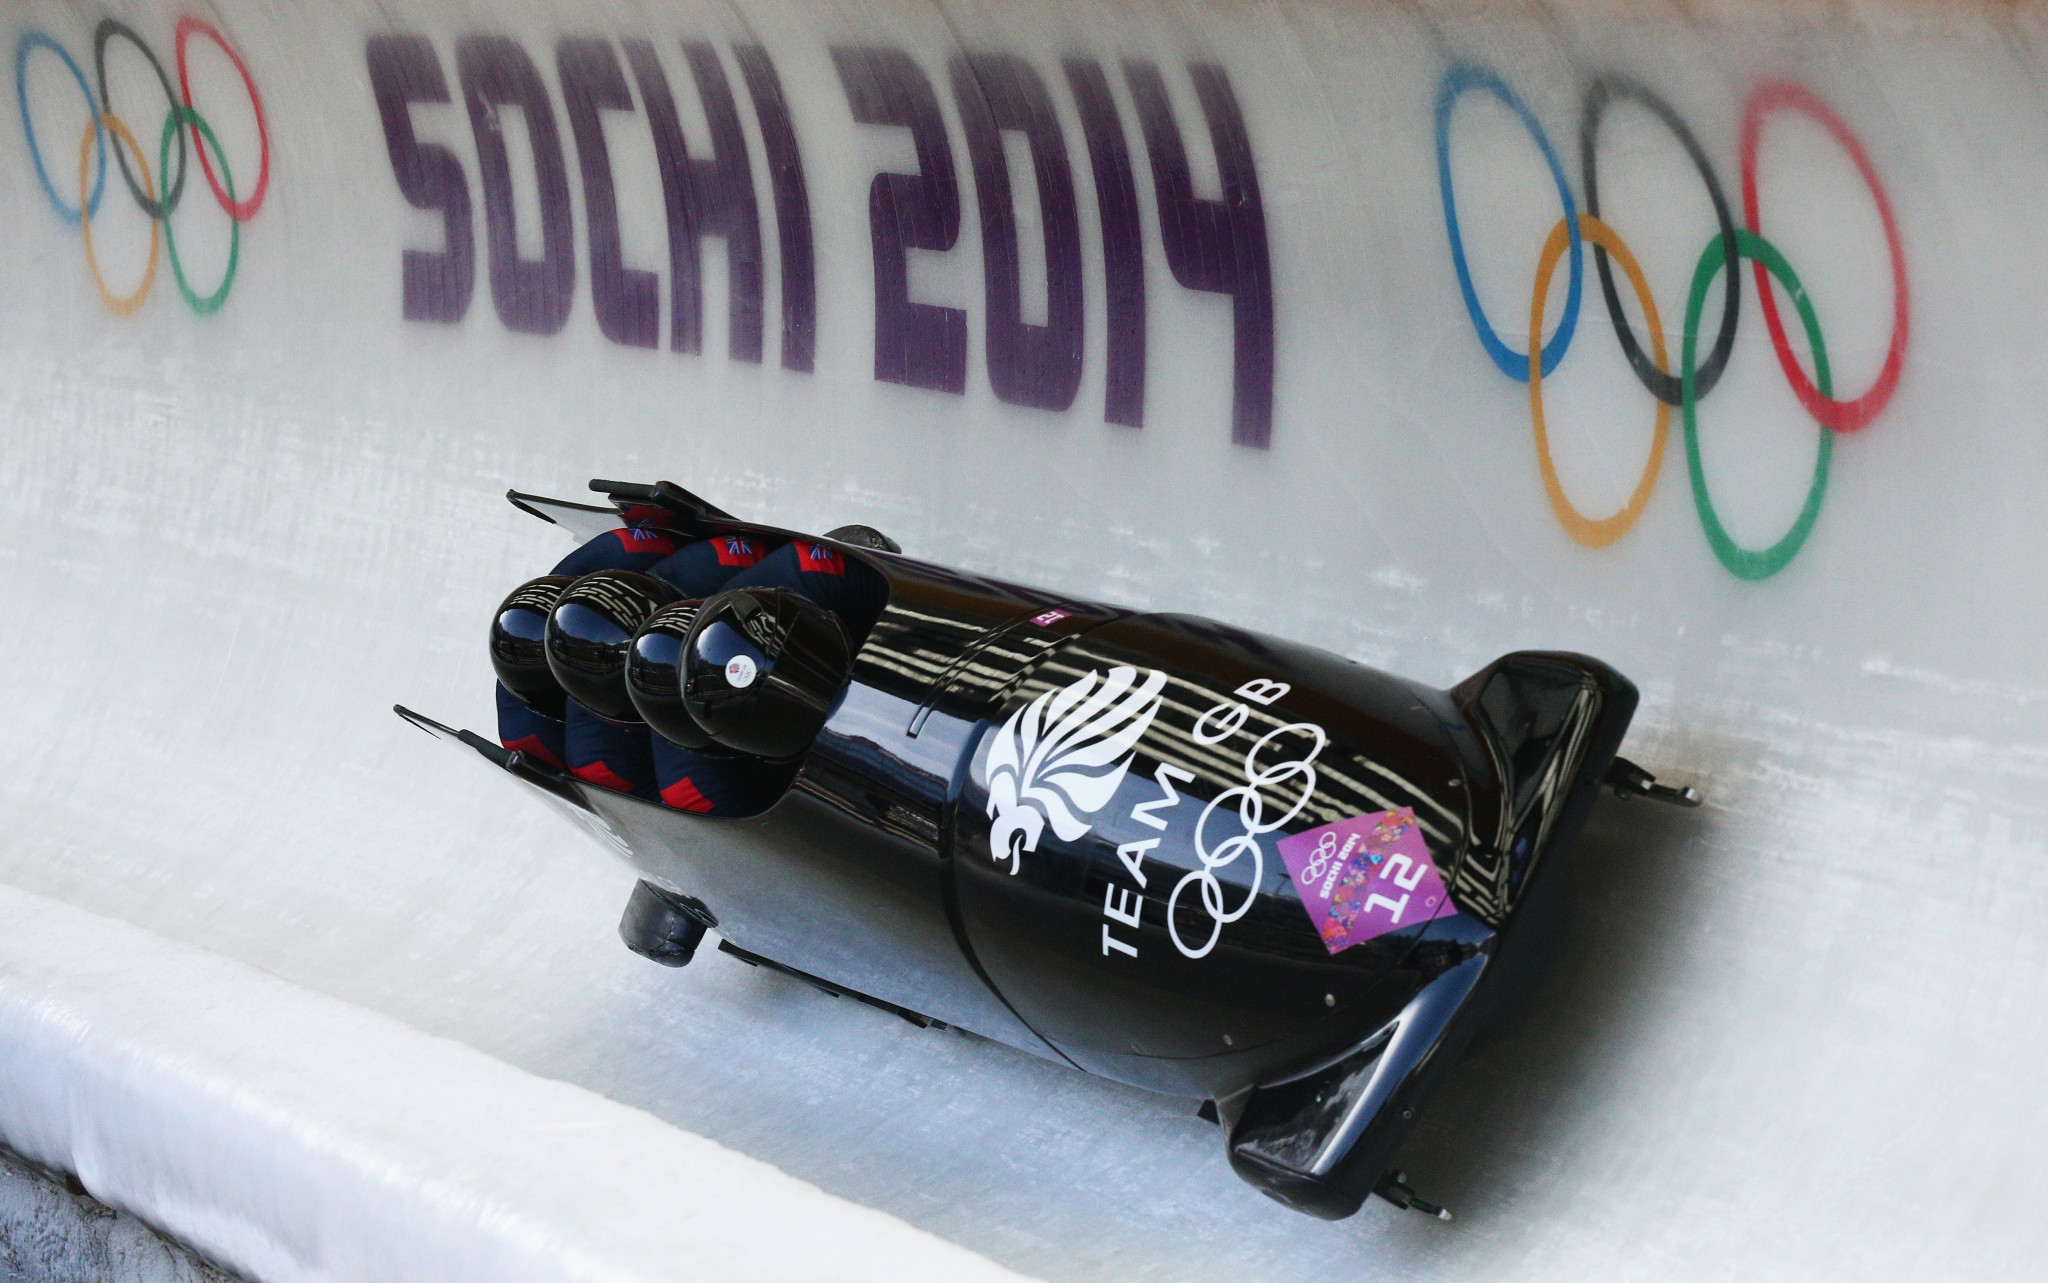 The British team initially finished fifth at Sochi 2014 ©Getty Images